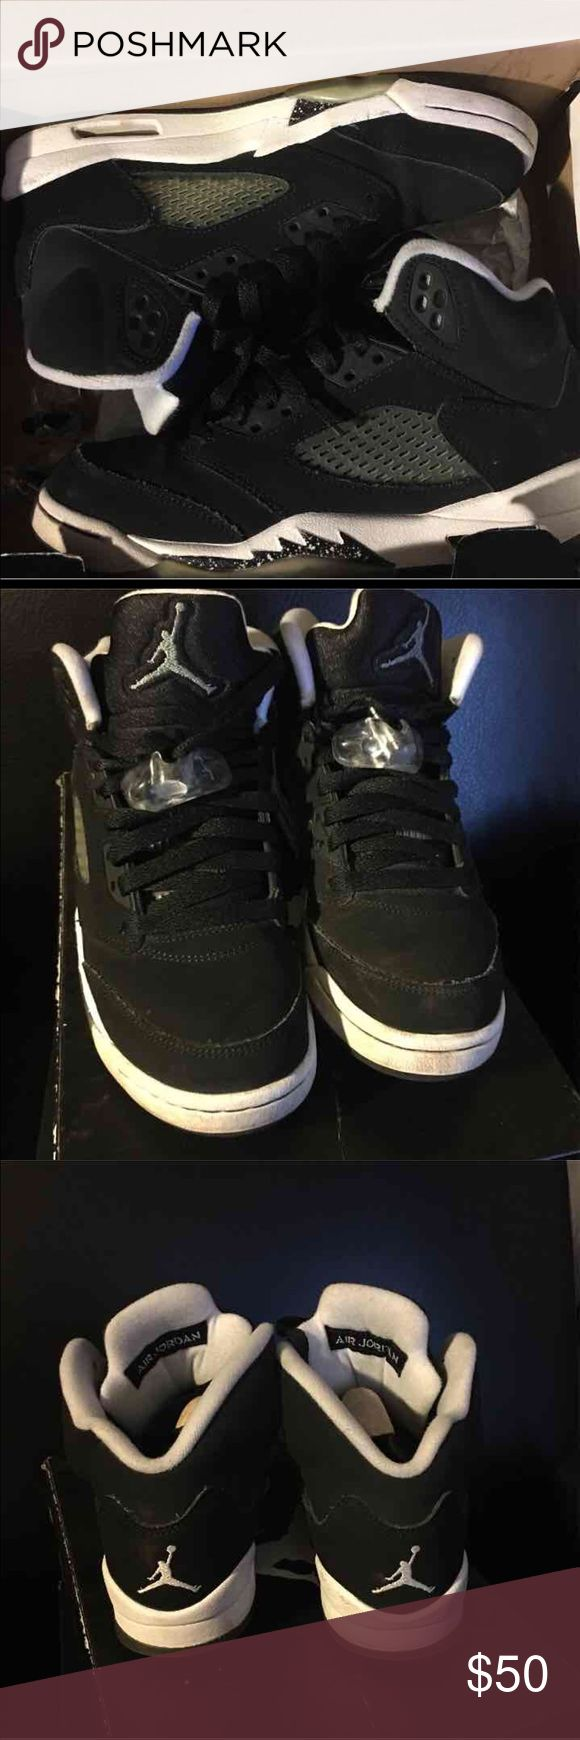 Jordan 5 Retro OREOS size 4.5 Authentic !! Gently used & well cared for. Still in very good condition!! Comes w original box and lace locks Jordan Shoes Sneakers